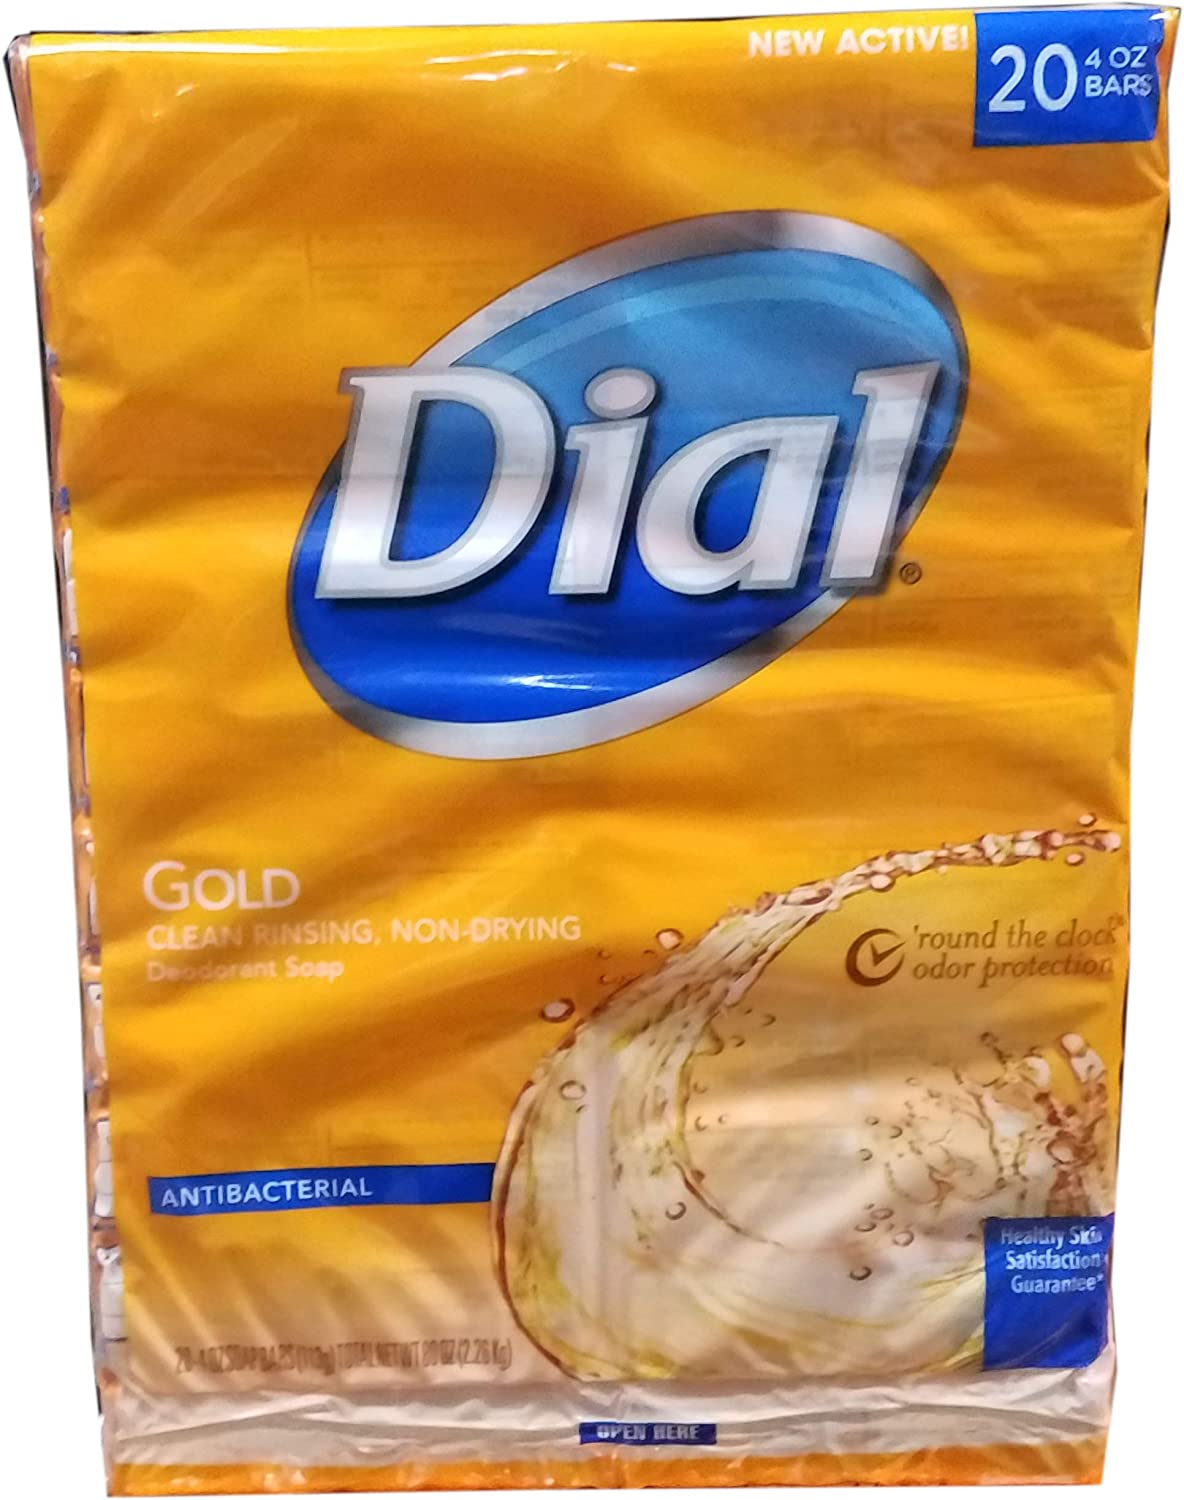 Dial Antibacterial Deodorant Gold Bar Soap, 4 Ounce (Pack of 20) Net Wt 5.LBS